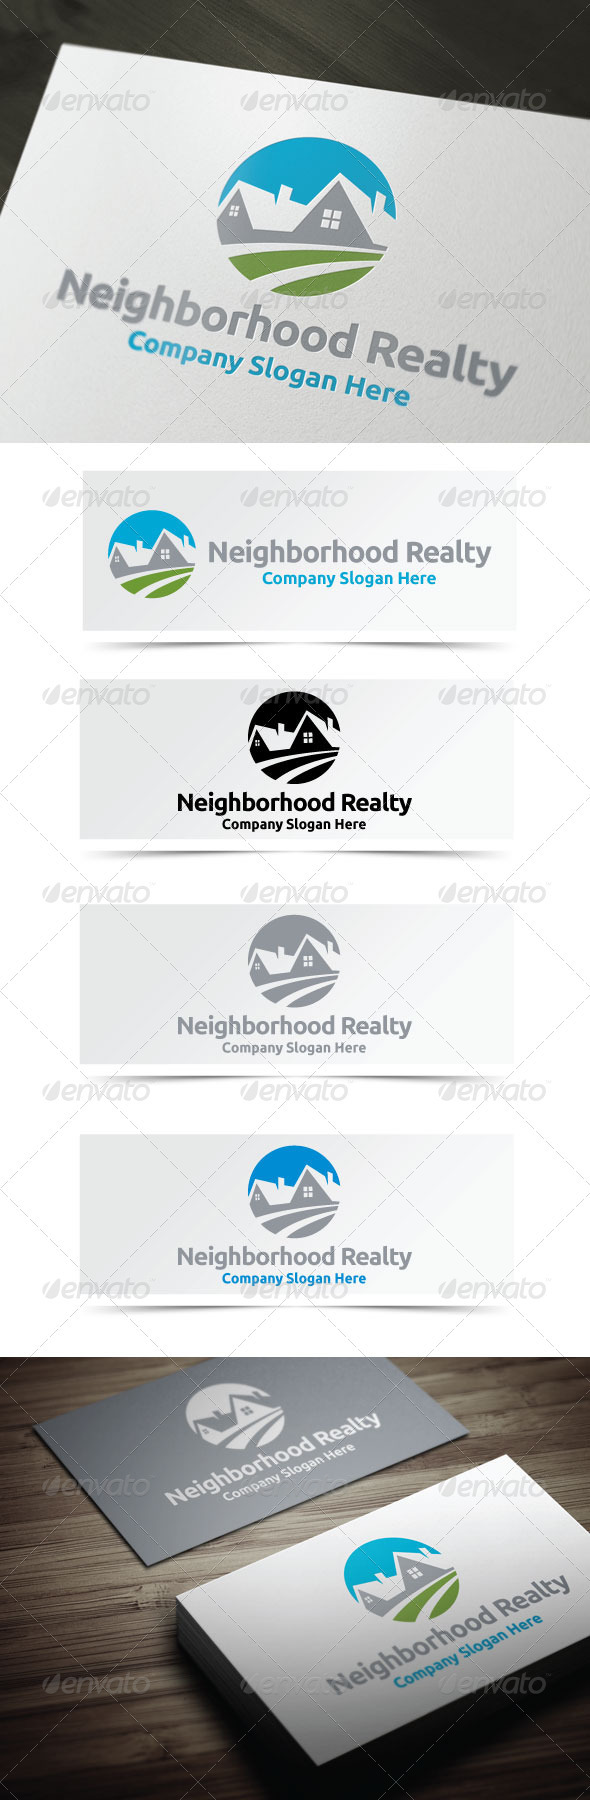 GraphicRiver Neighborhood Realty 3966561